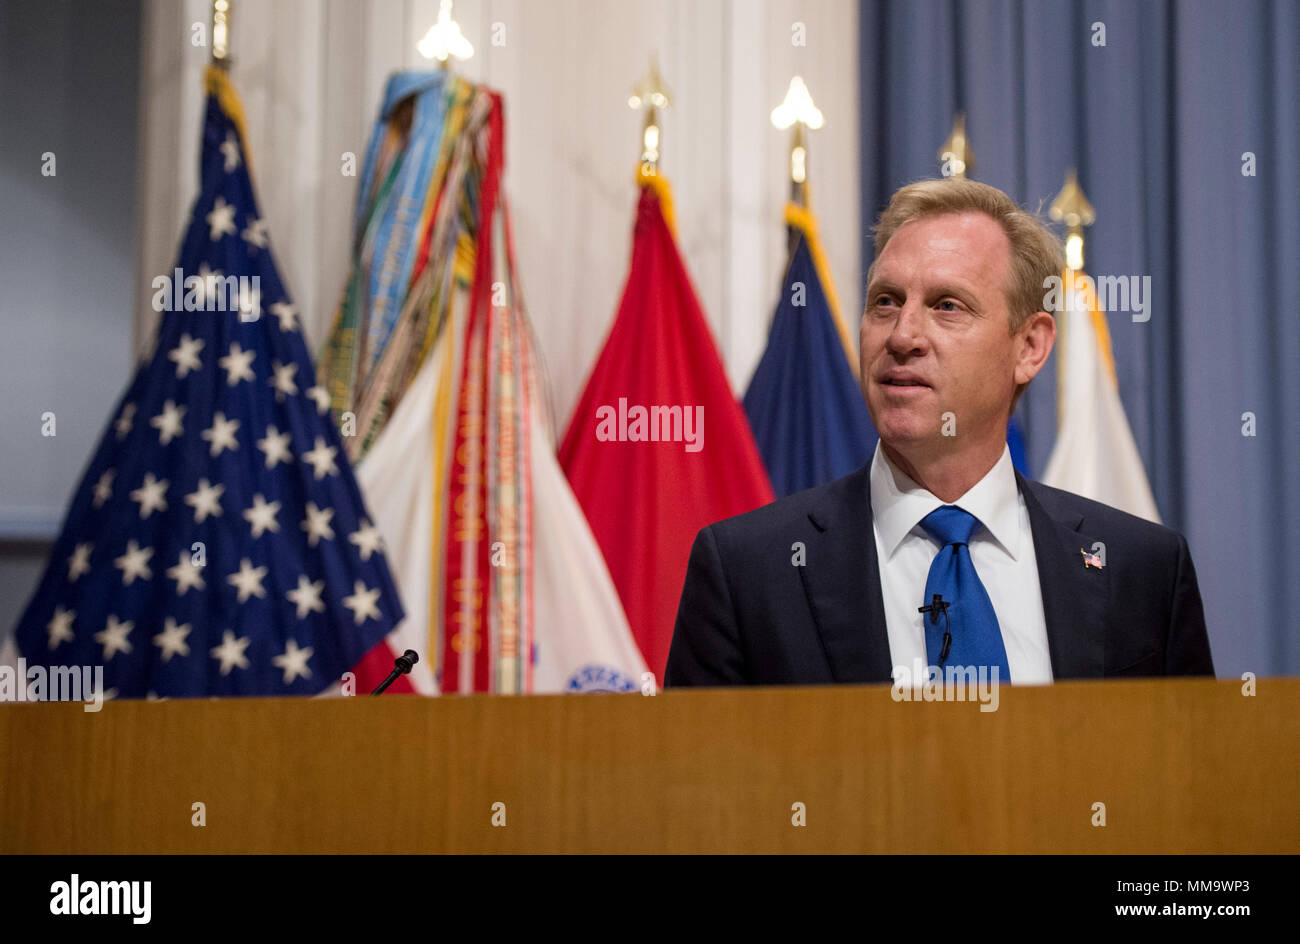 Deputy Secretary of Defense Pat Shanahan speaks with students at The Judge Advocate General's Legal Center and School Sept. 25, 2017, at the University of Virginia in Charlottesville, Va. The school provides legal education, strategic planning, and collection and integration of lessons learned to the DOD legal community. (DOD photo by Air Force Tech. Sgt. Brigitte N. Brantley) - Stock Image